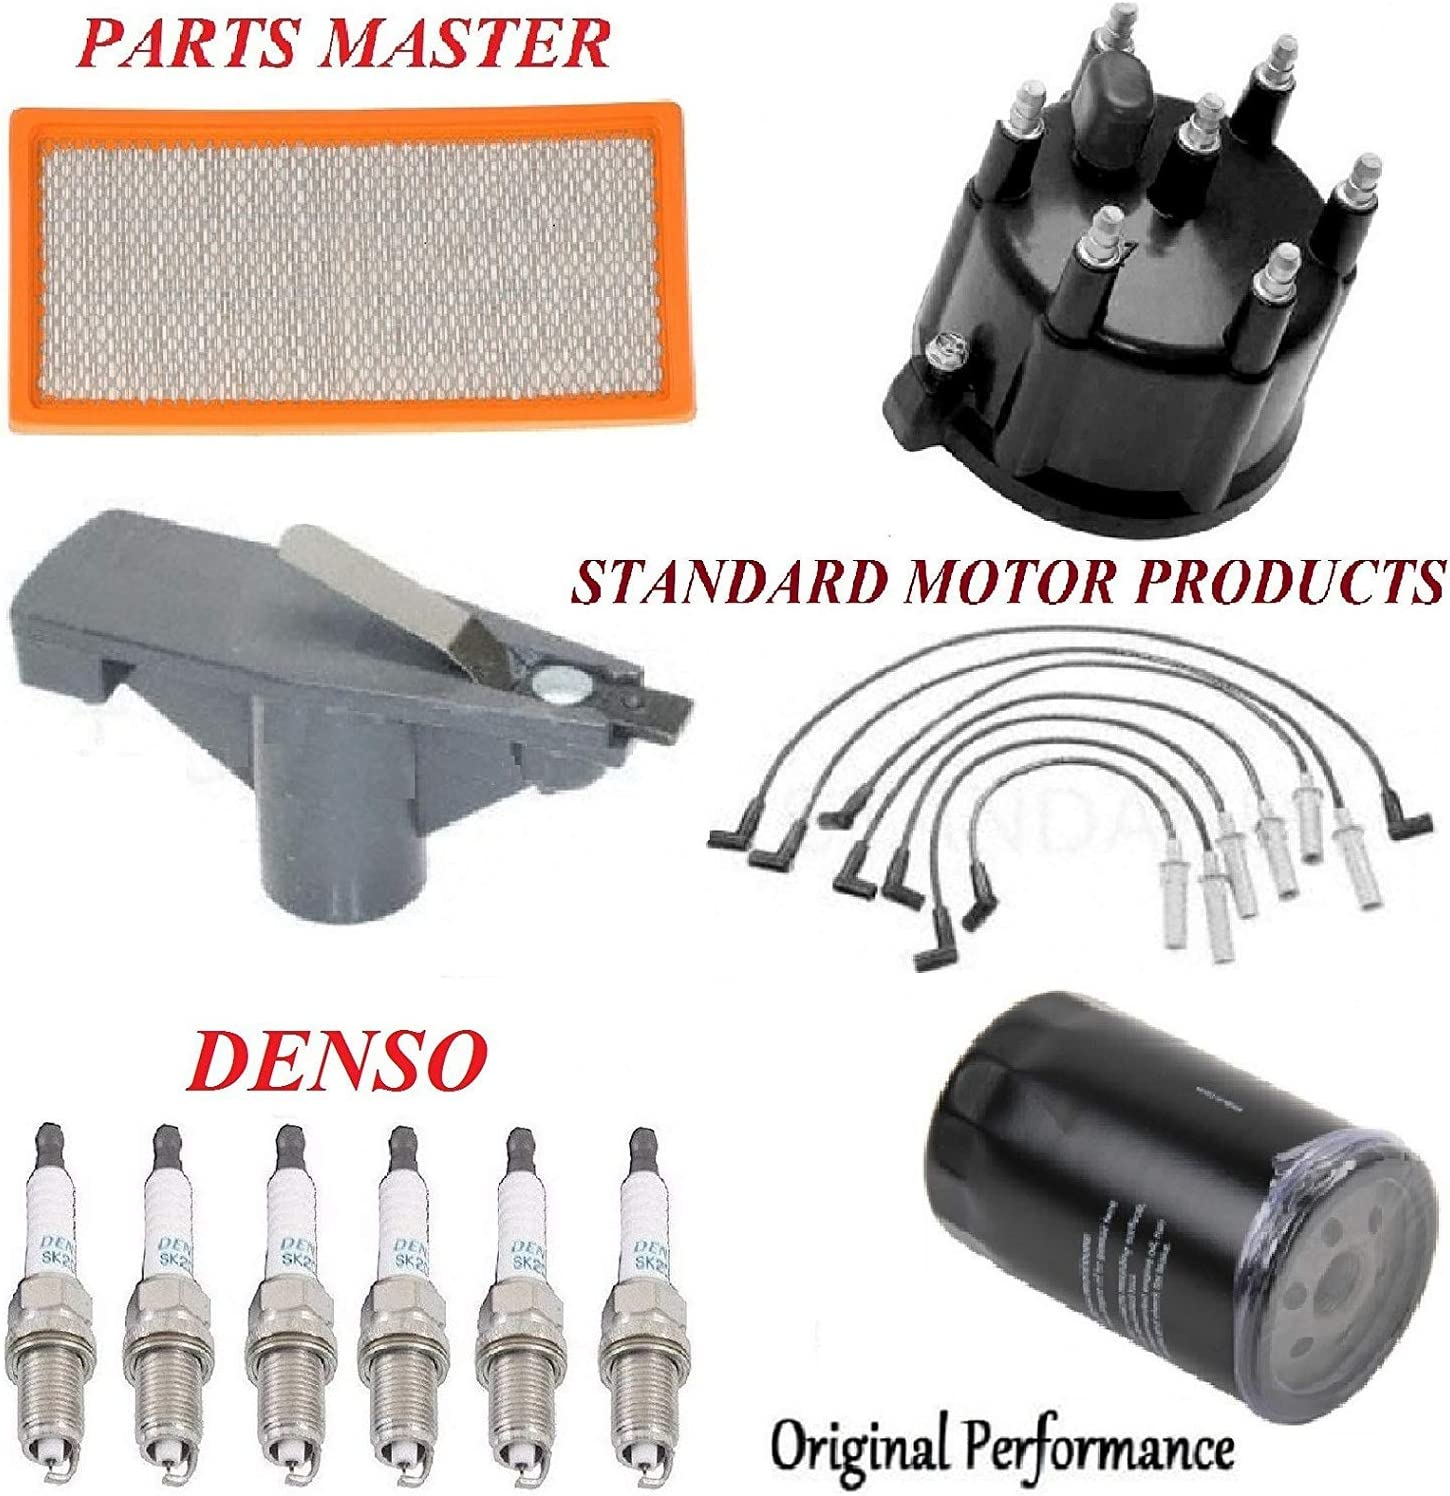 APDTY 756689 4 Wire Wiring Harness Pigtail Connector Replaces 88987185 PT1626